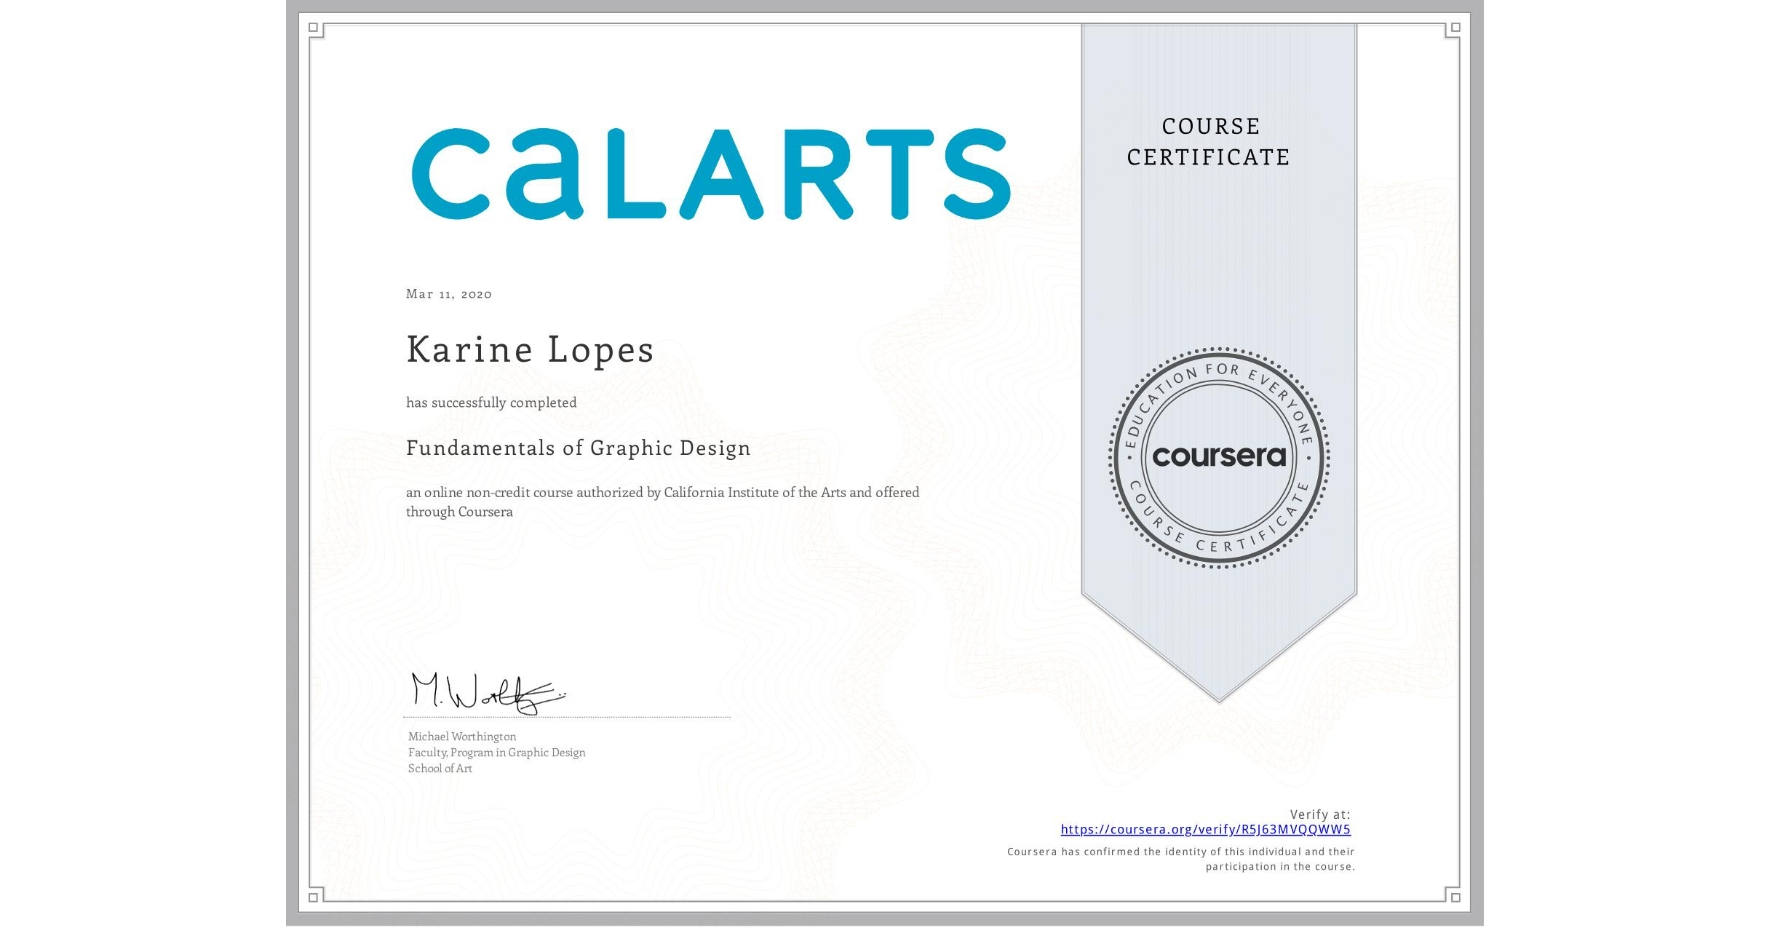 View certificate for Karine Lopes, Fundamentals of Graphic Design, an online non-credit course authorized by California Institute of the Arts and offered through Coursera